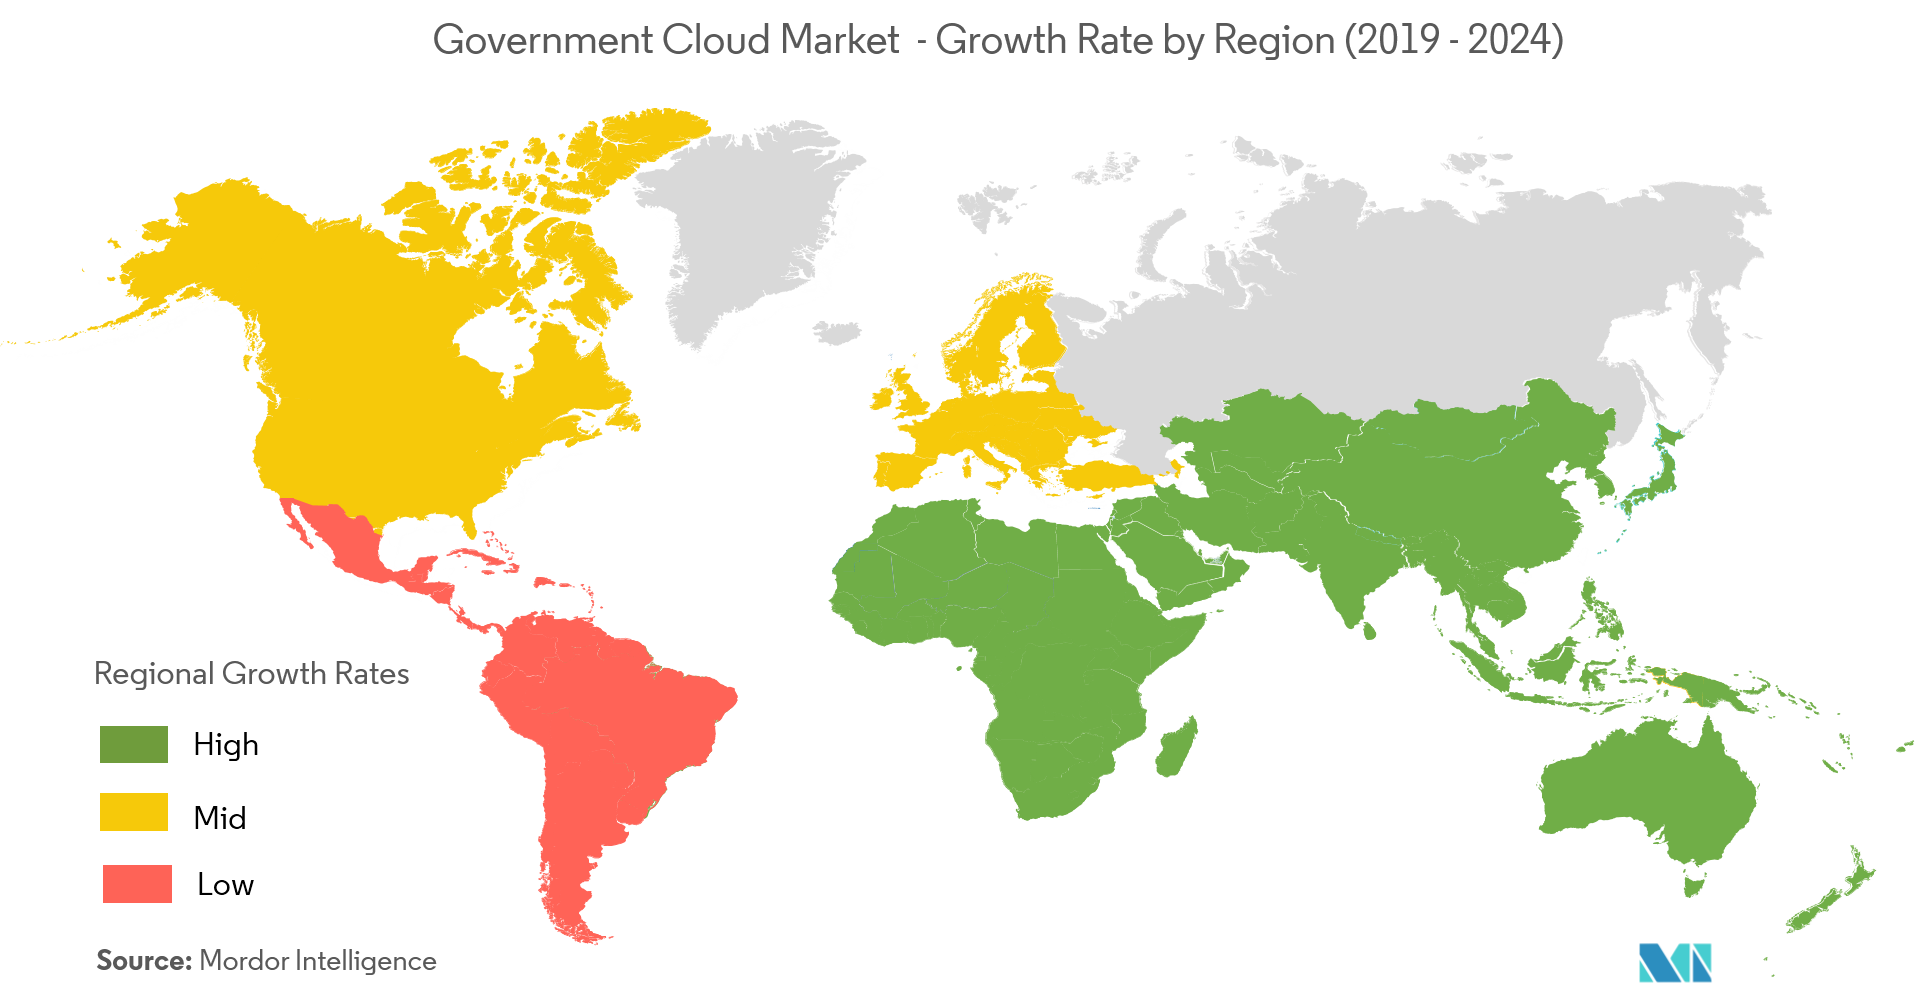 govt cloud map